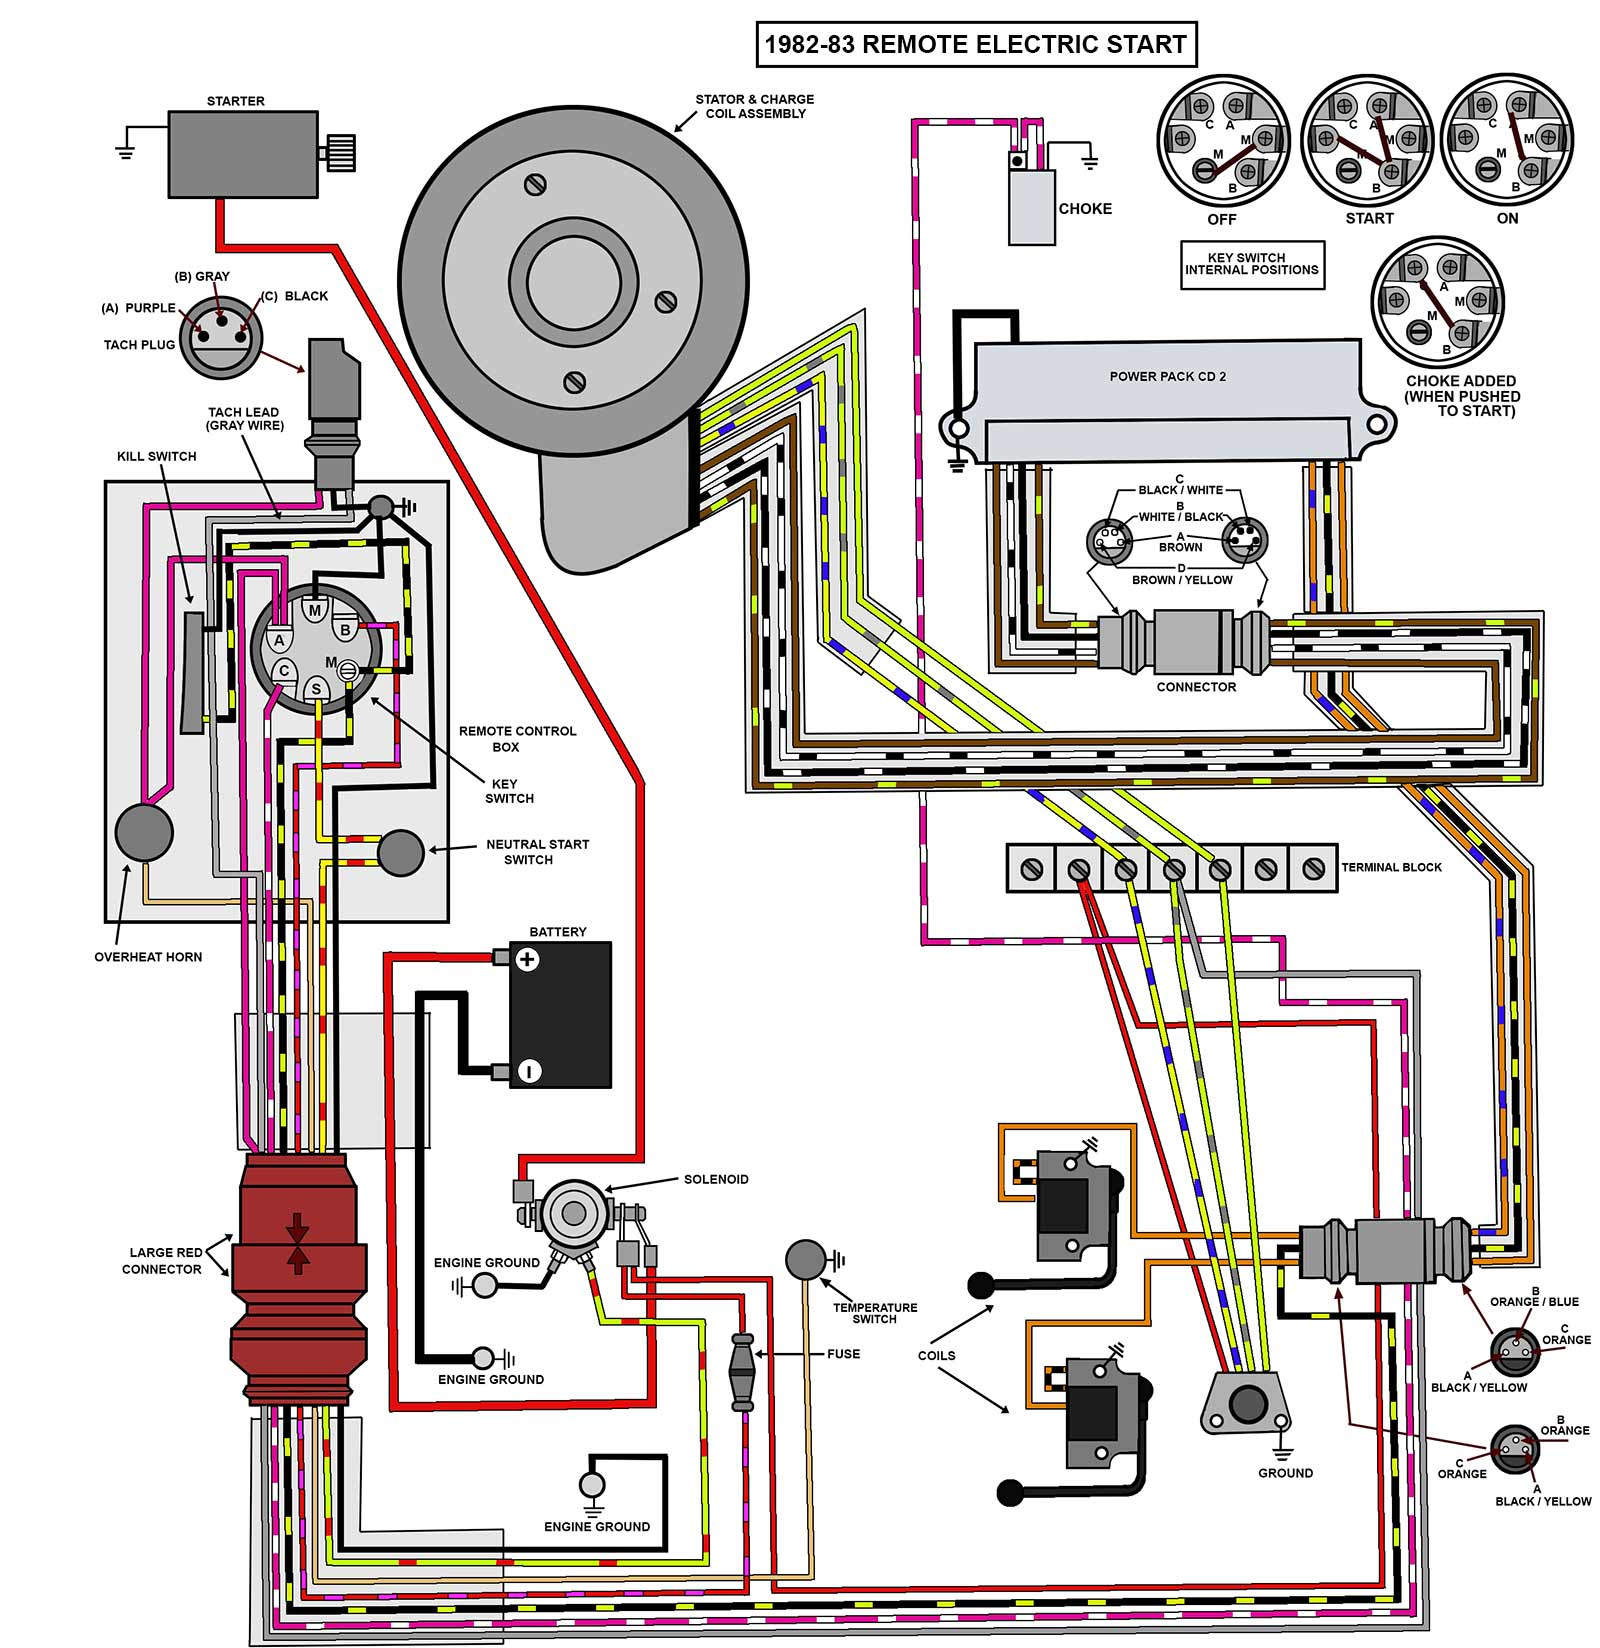 1990 70 Hp Evinrude Wiring Diagram Schematic Content Resource Of A Switched Electrical Online Johnson Ignition Switch Schematics Rh Delvato Co 1992